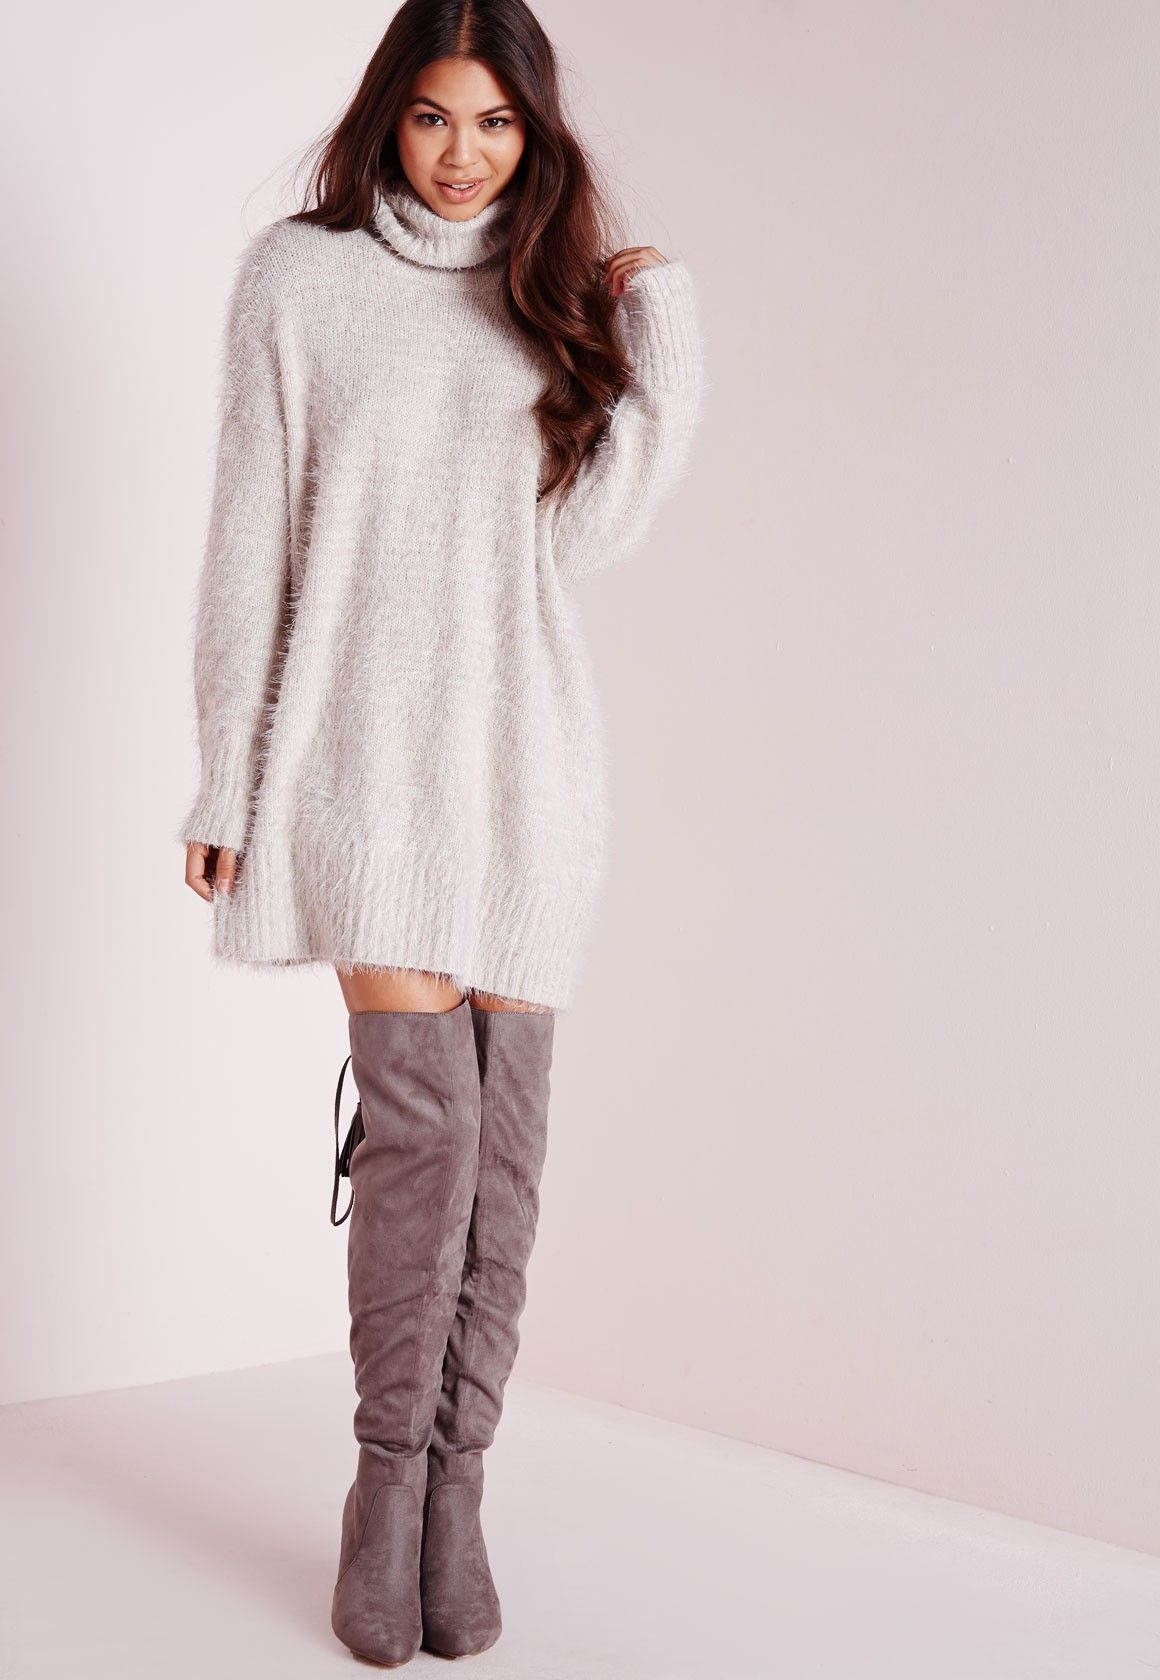 38471bf10eb6 Missguided - Robe-pull en laine poilue grise col roulé